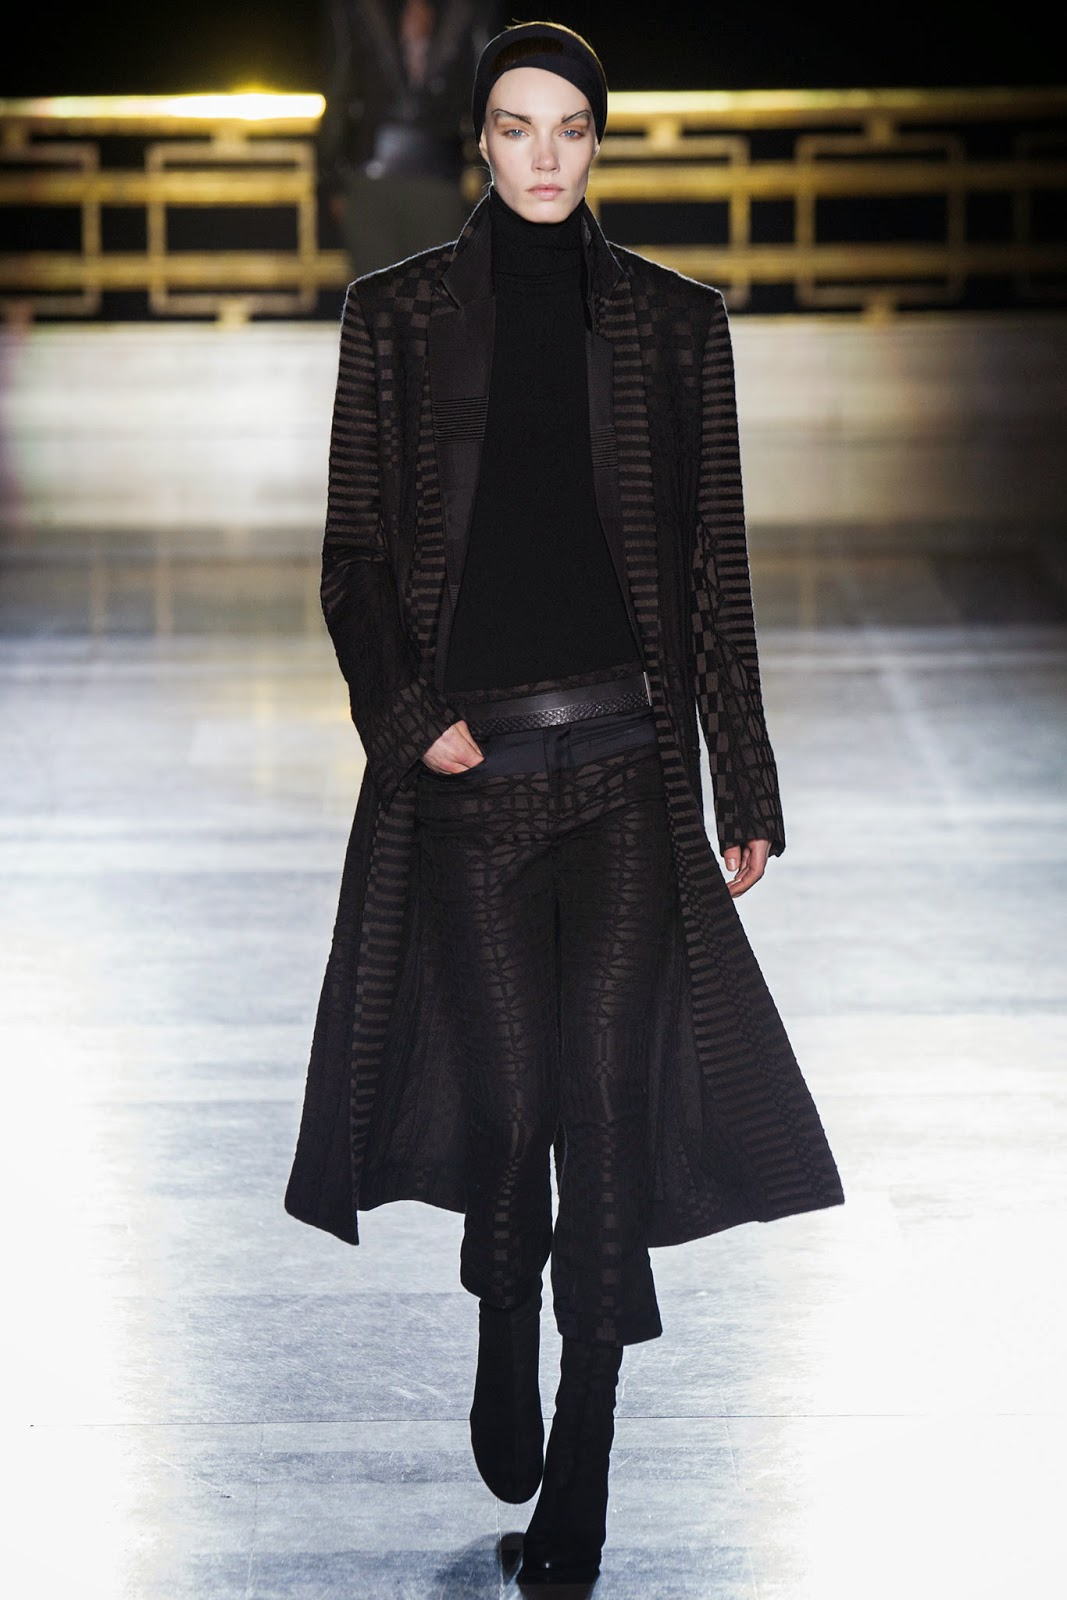 Haider Ackermann fall winter 2014-2015